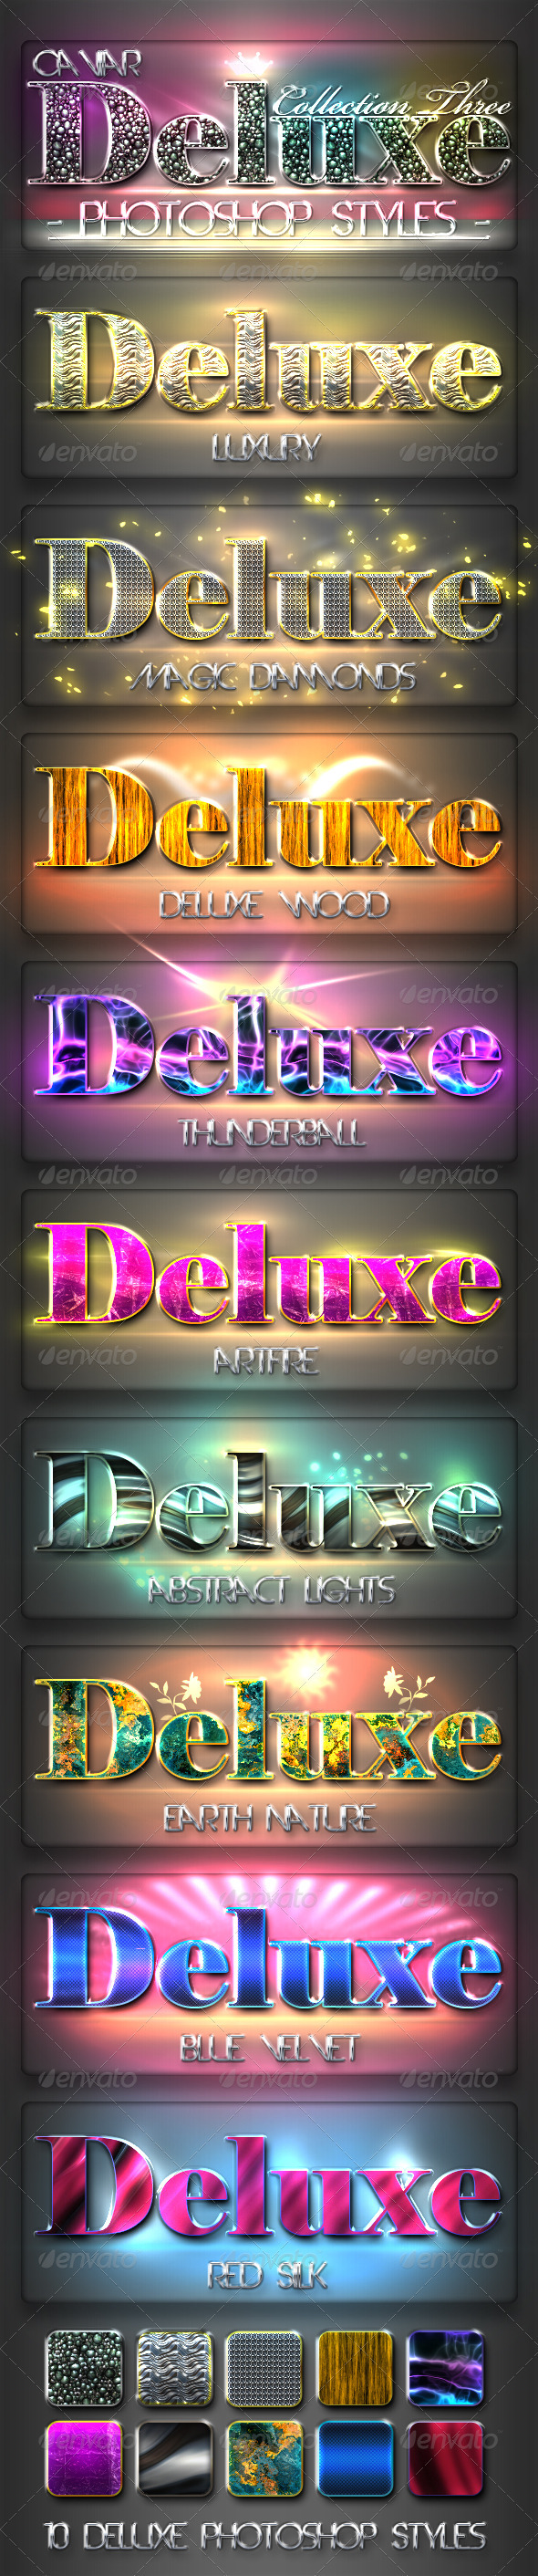 GraphicRiver 10 DeLuxe Photoshop Layer Styles C3 & Lights 2245254